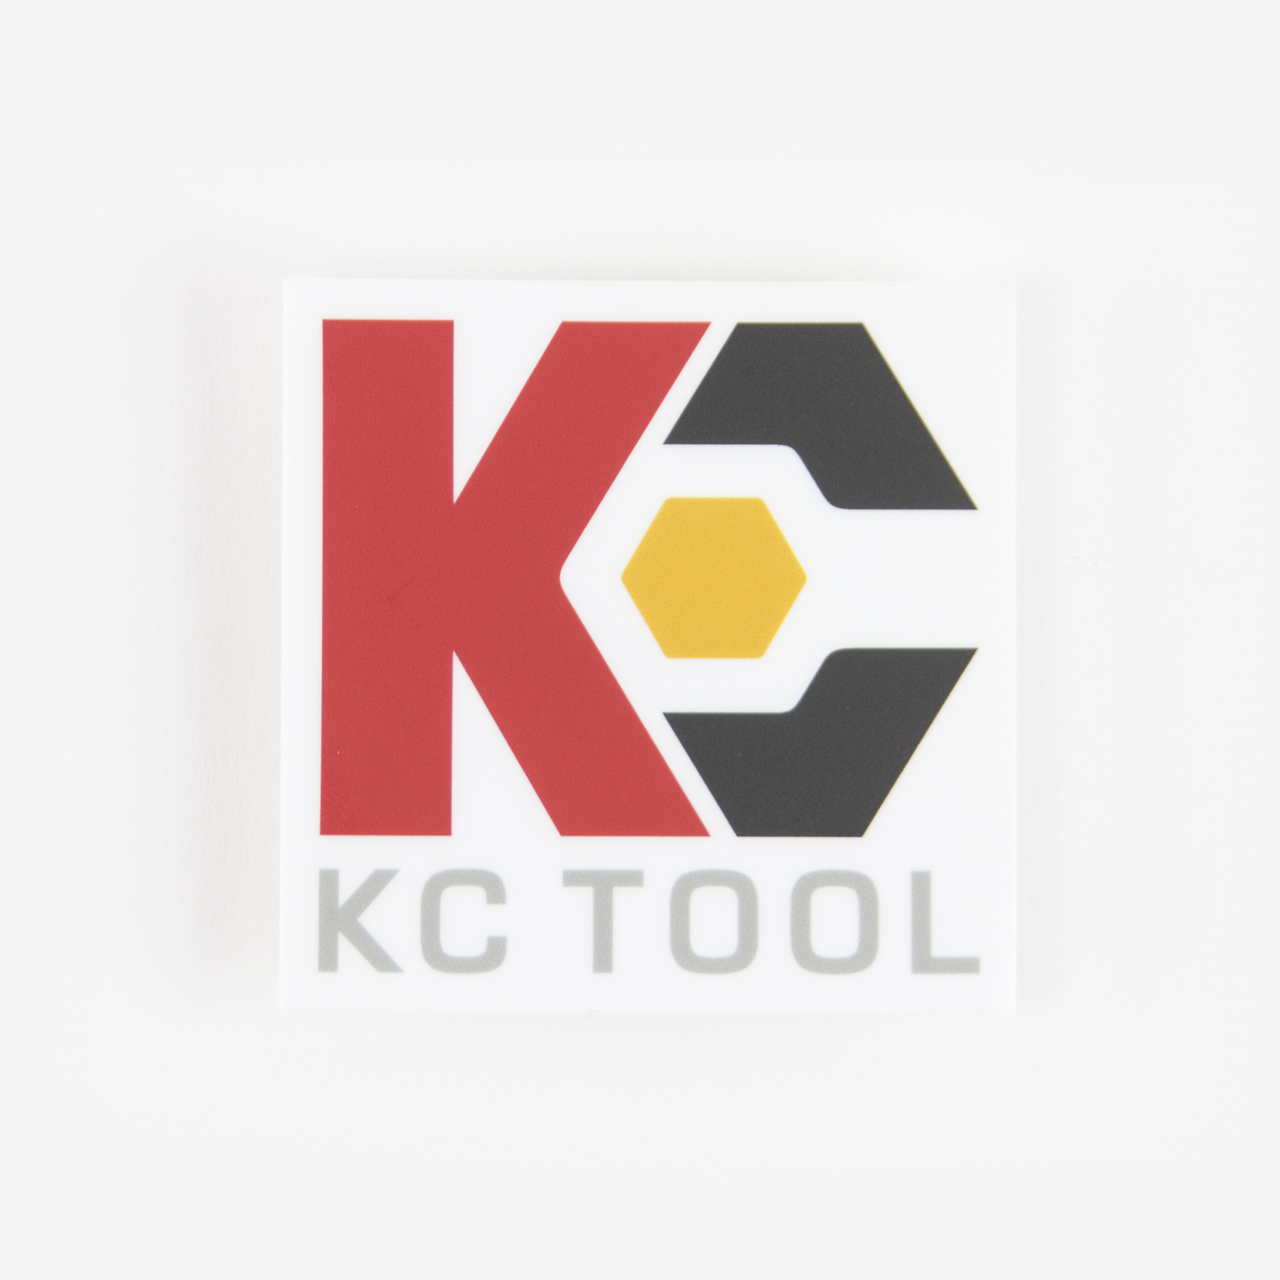 KC Tool Sticker  - KC Tool